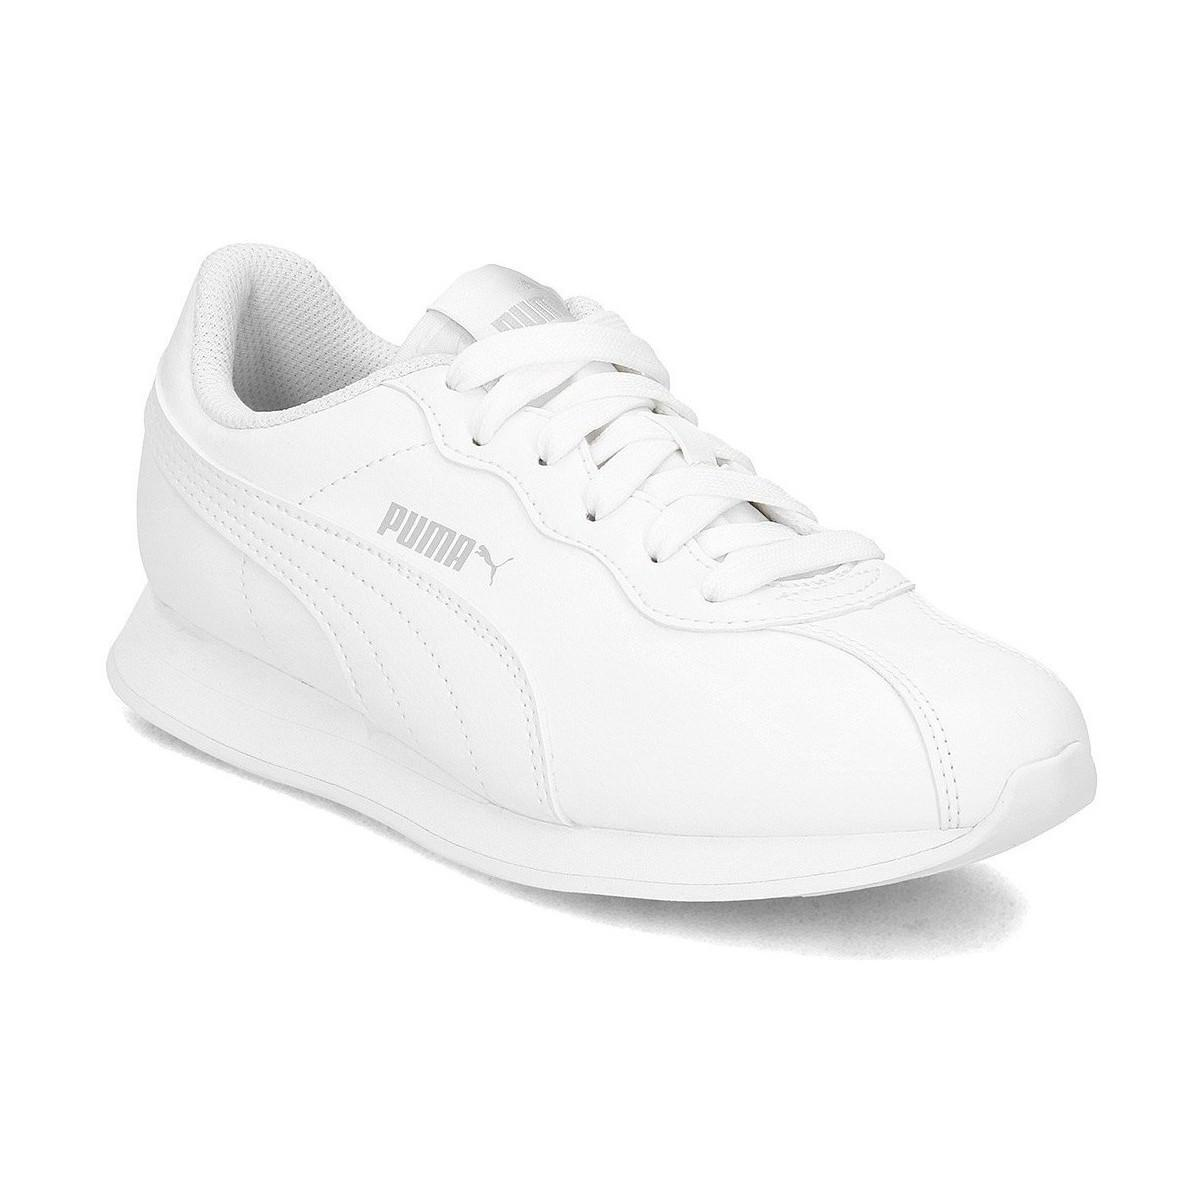 1a19973bc1fd Puma Turin Ii Women s Shoes (trainers) In White in White - Lyst